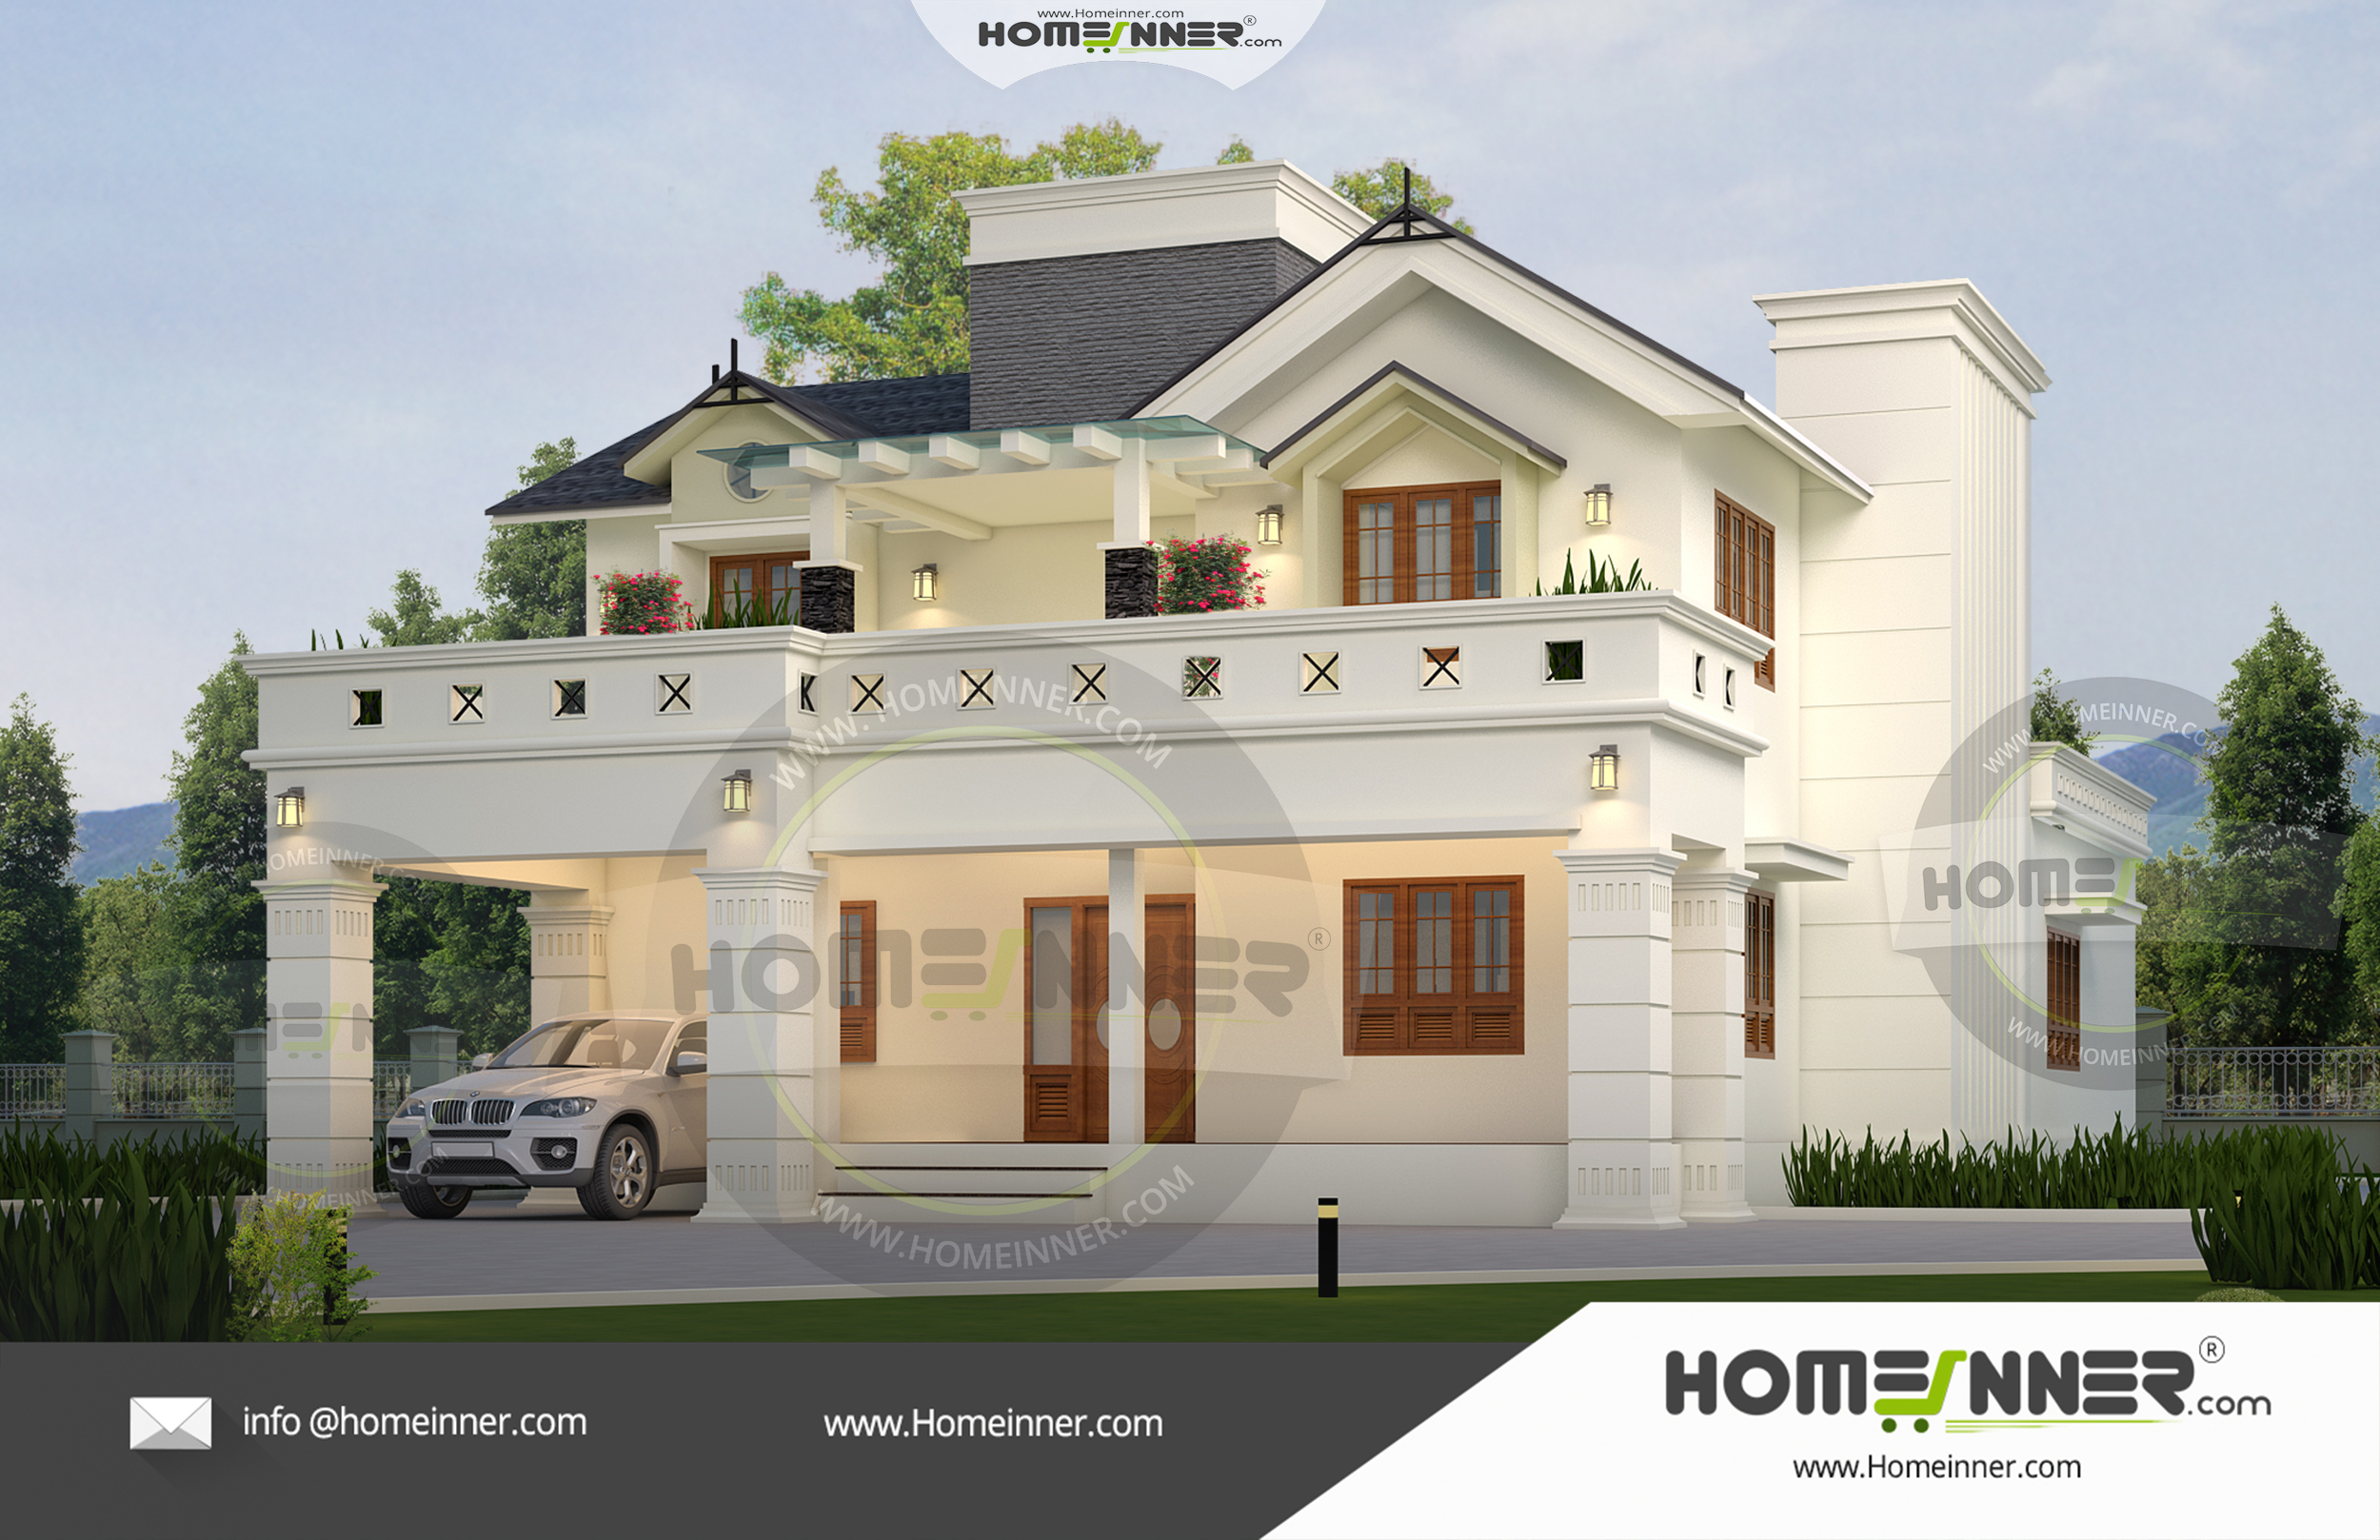 Leh 35 Lakh Good Home Designs Homeinner Free House Plan Home Design Collection